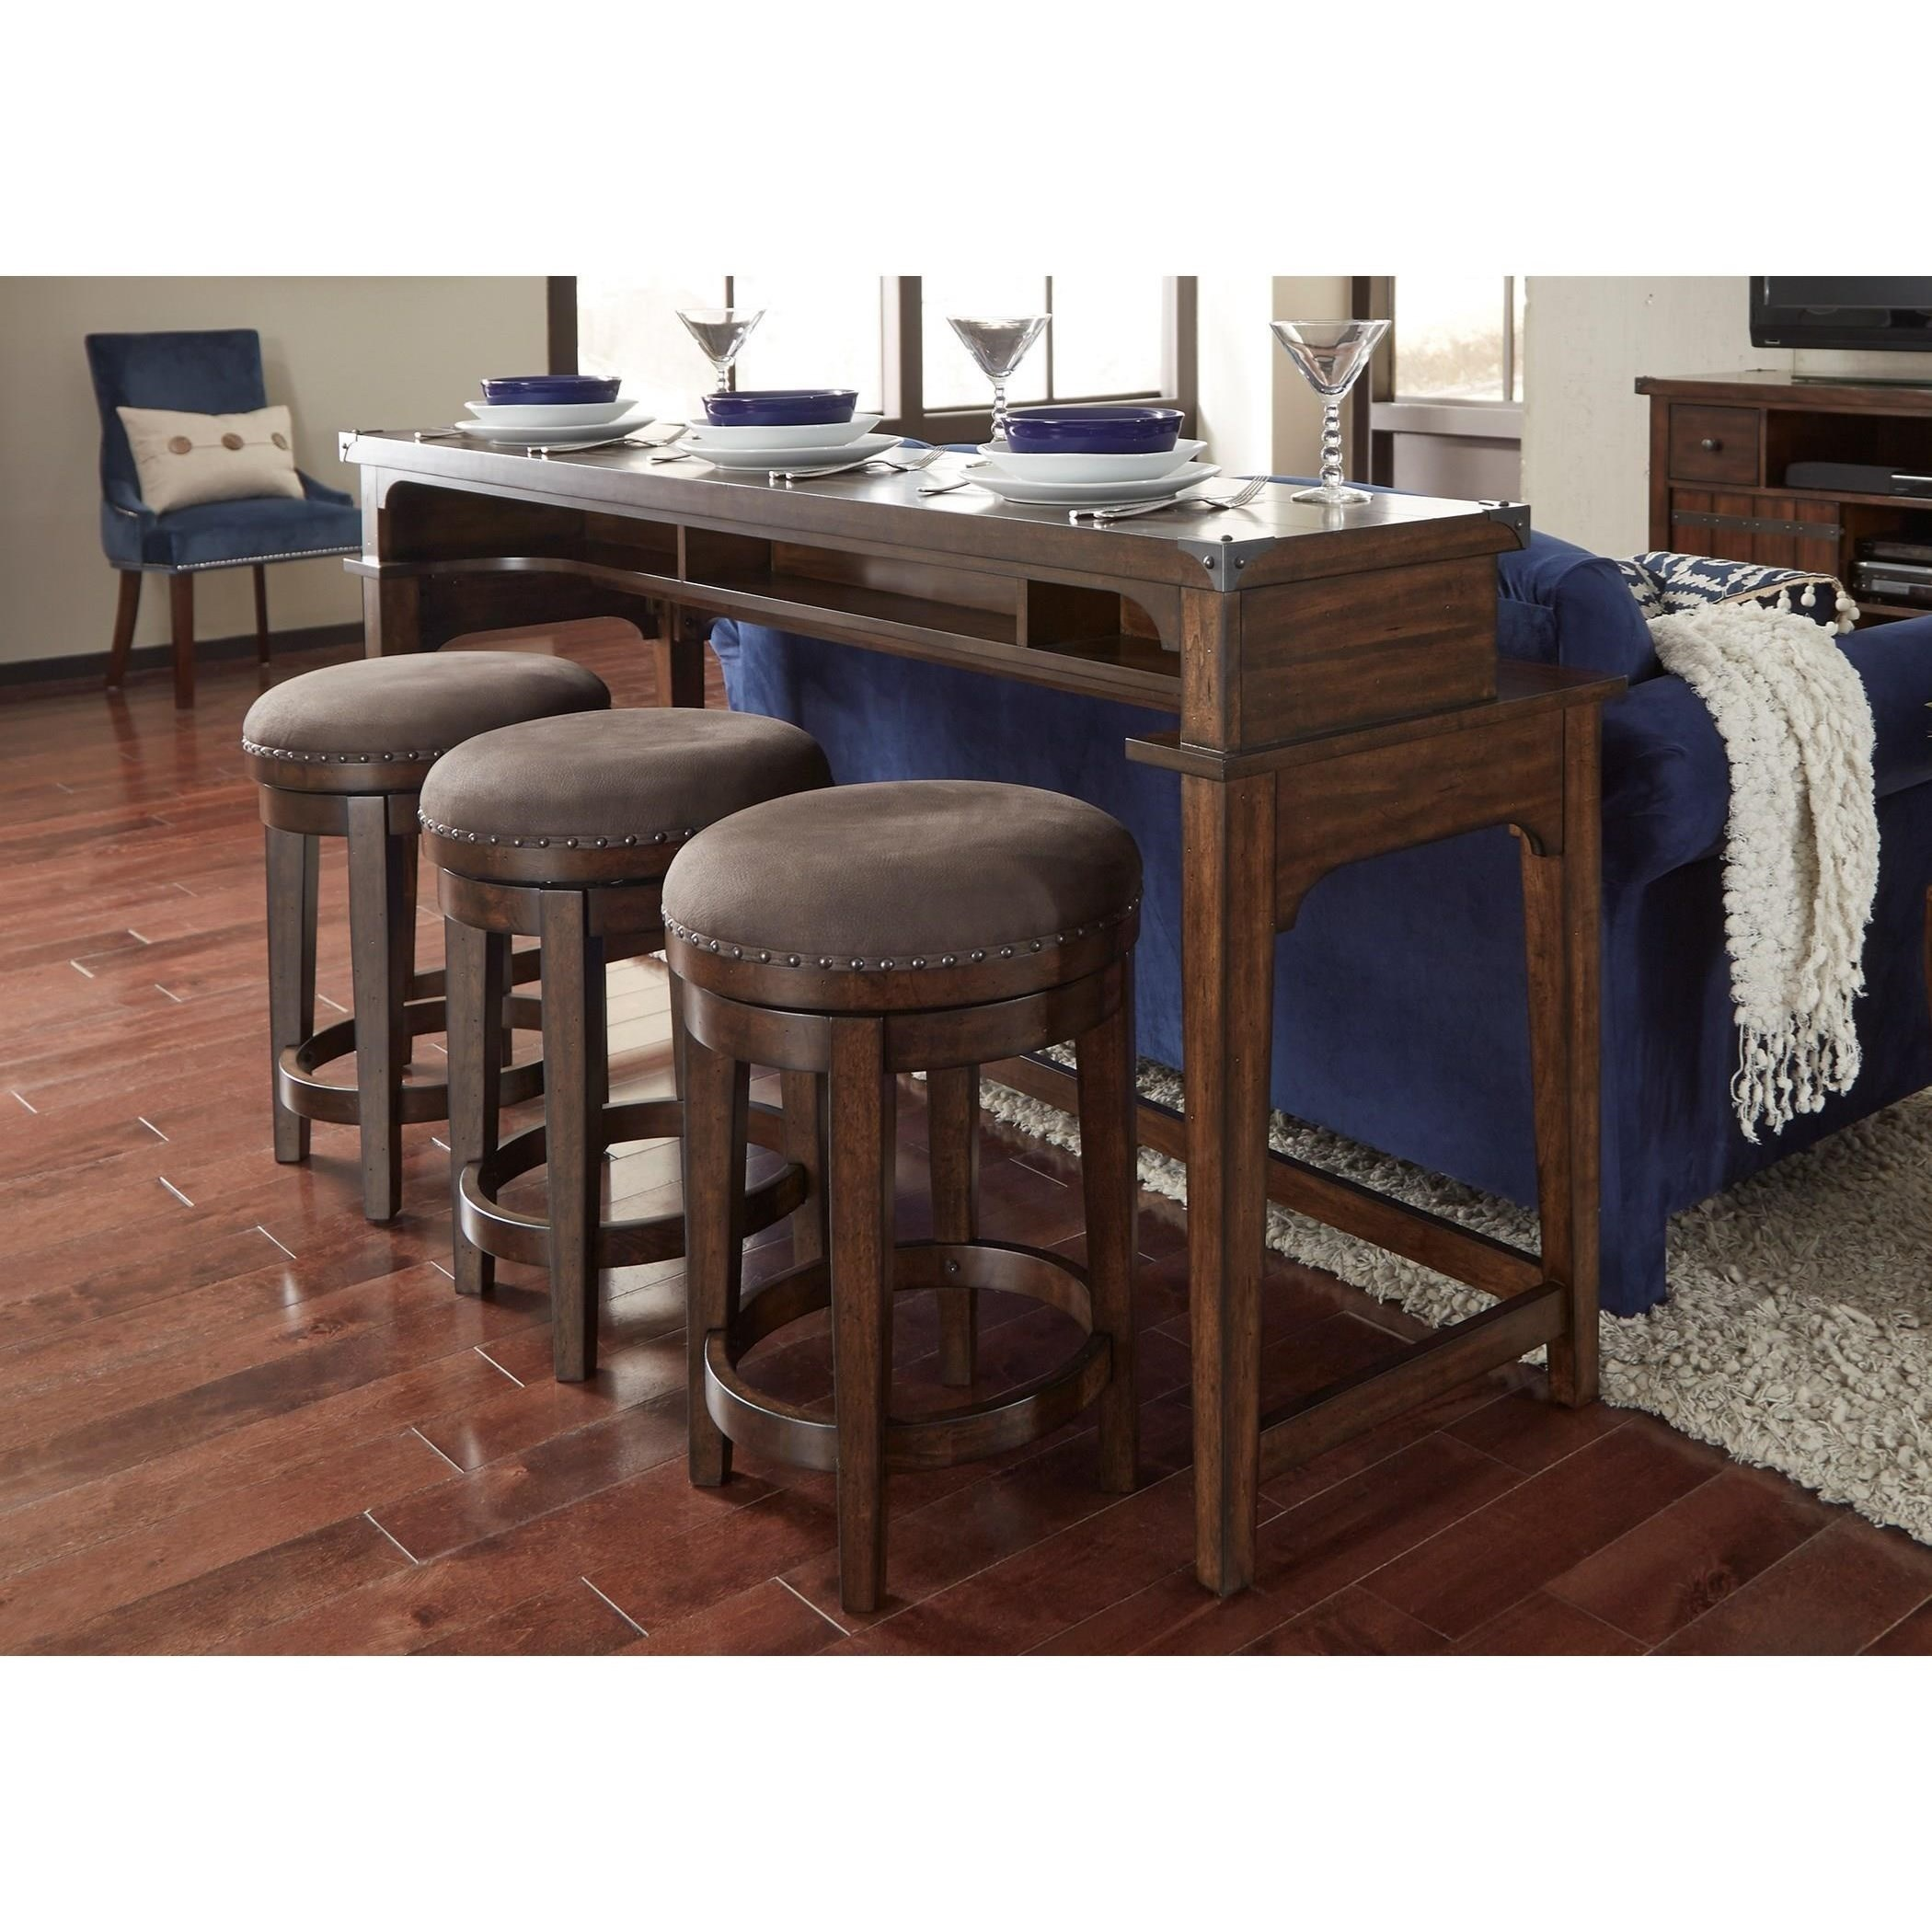 Liberty Furniture Aspen Skies Counter Height Sofa Table And Rh Royalfurniture Com With Stools Kitchen Tables